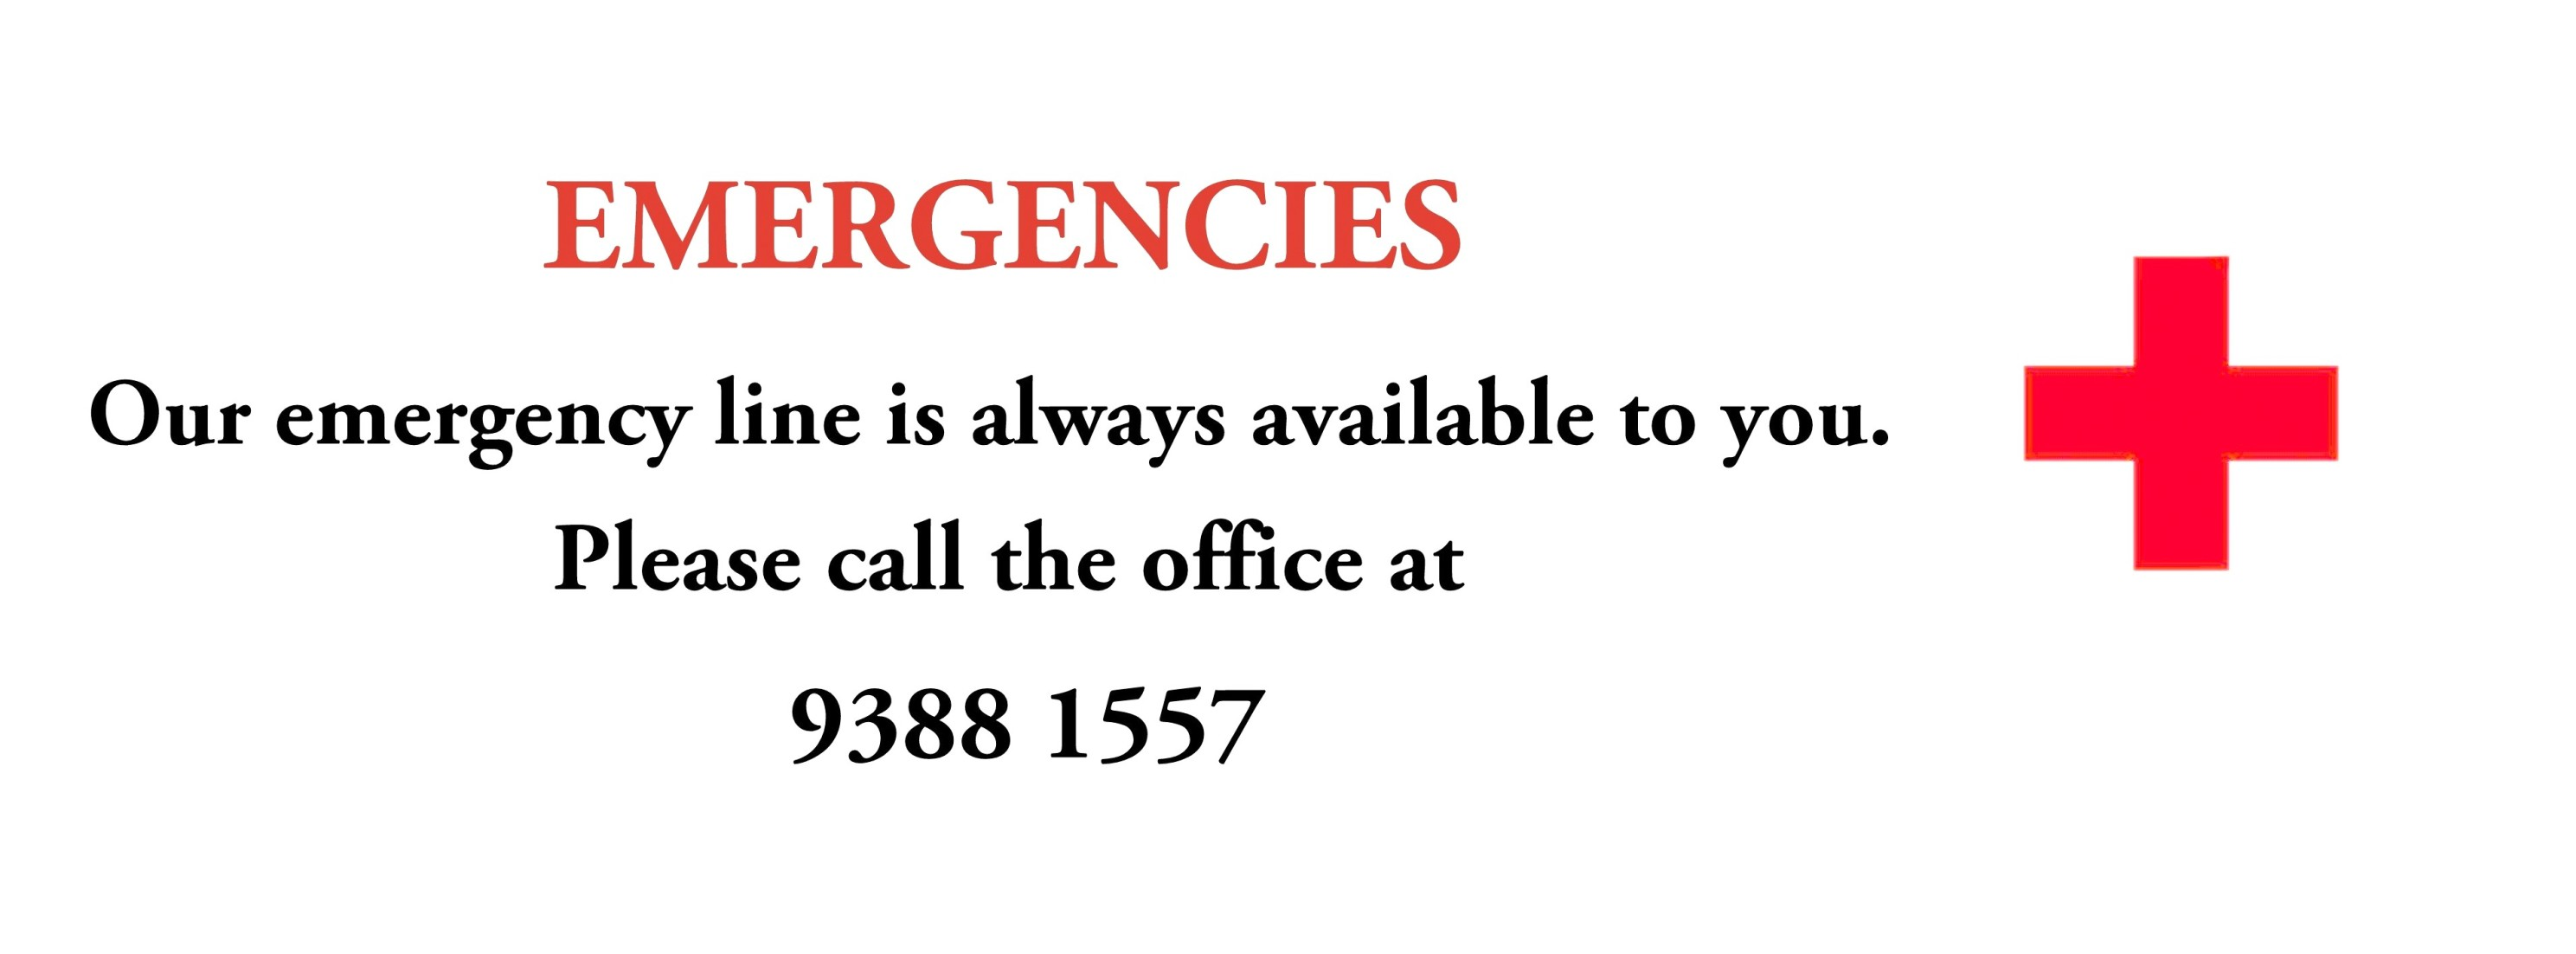 Emergencies call 9388 1557